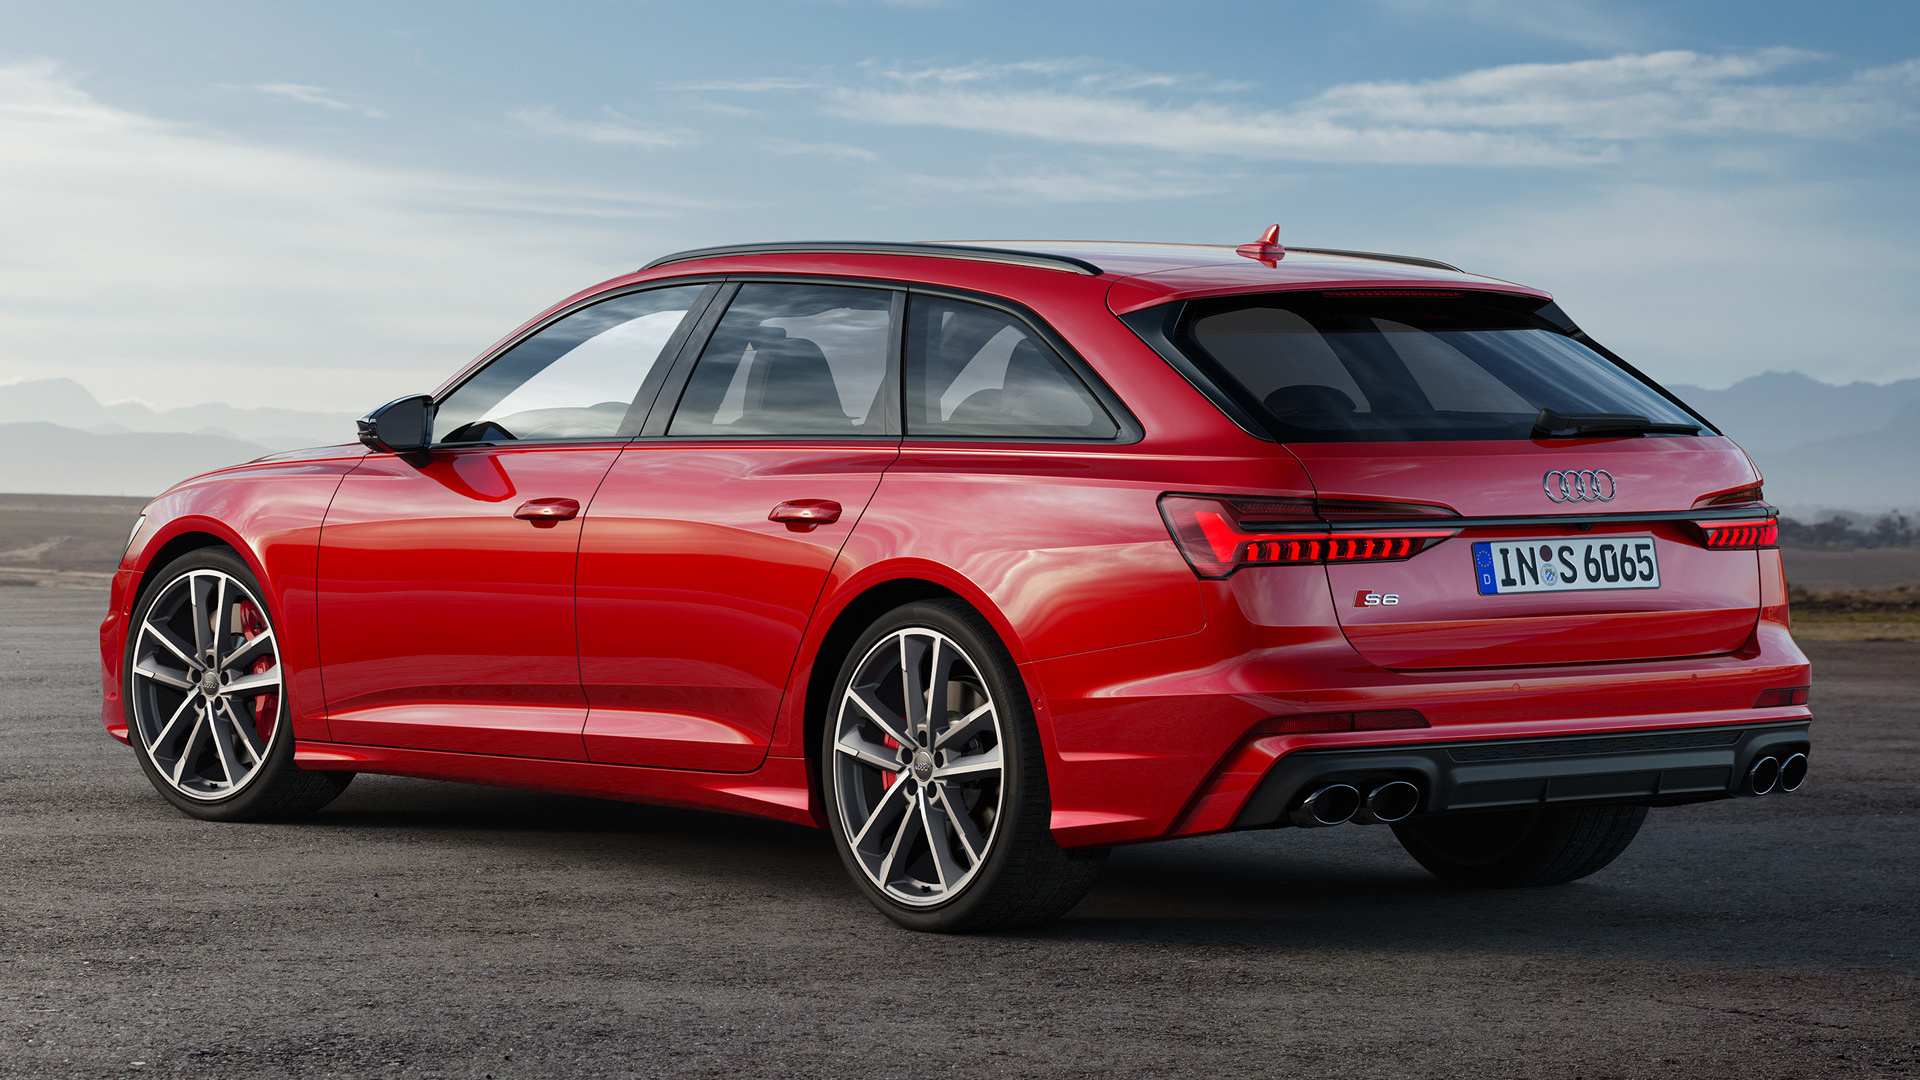 2019 Audi S6 Avant Black Optic Package - Wallpapers and HD Images